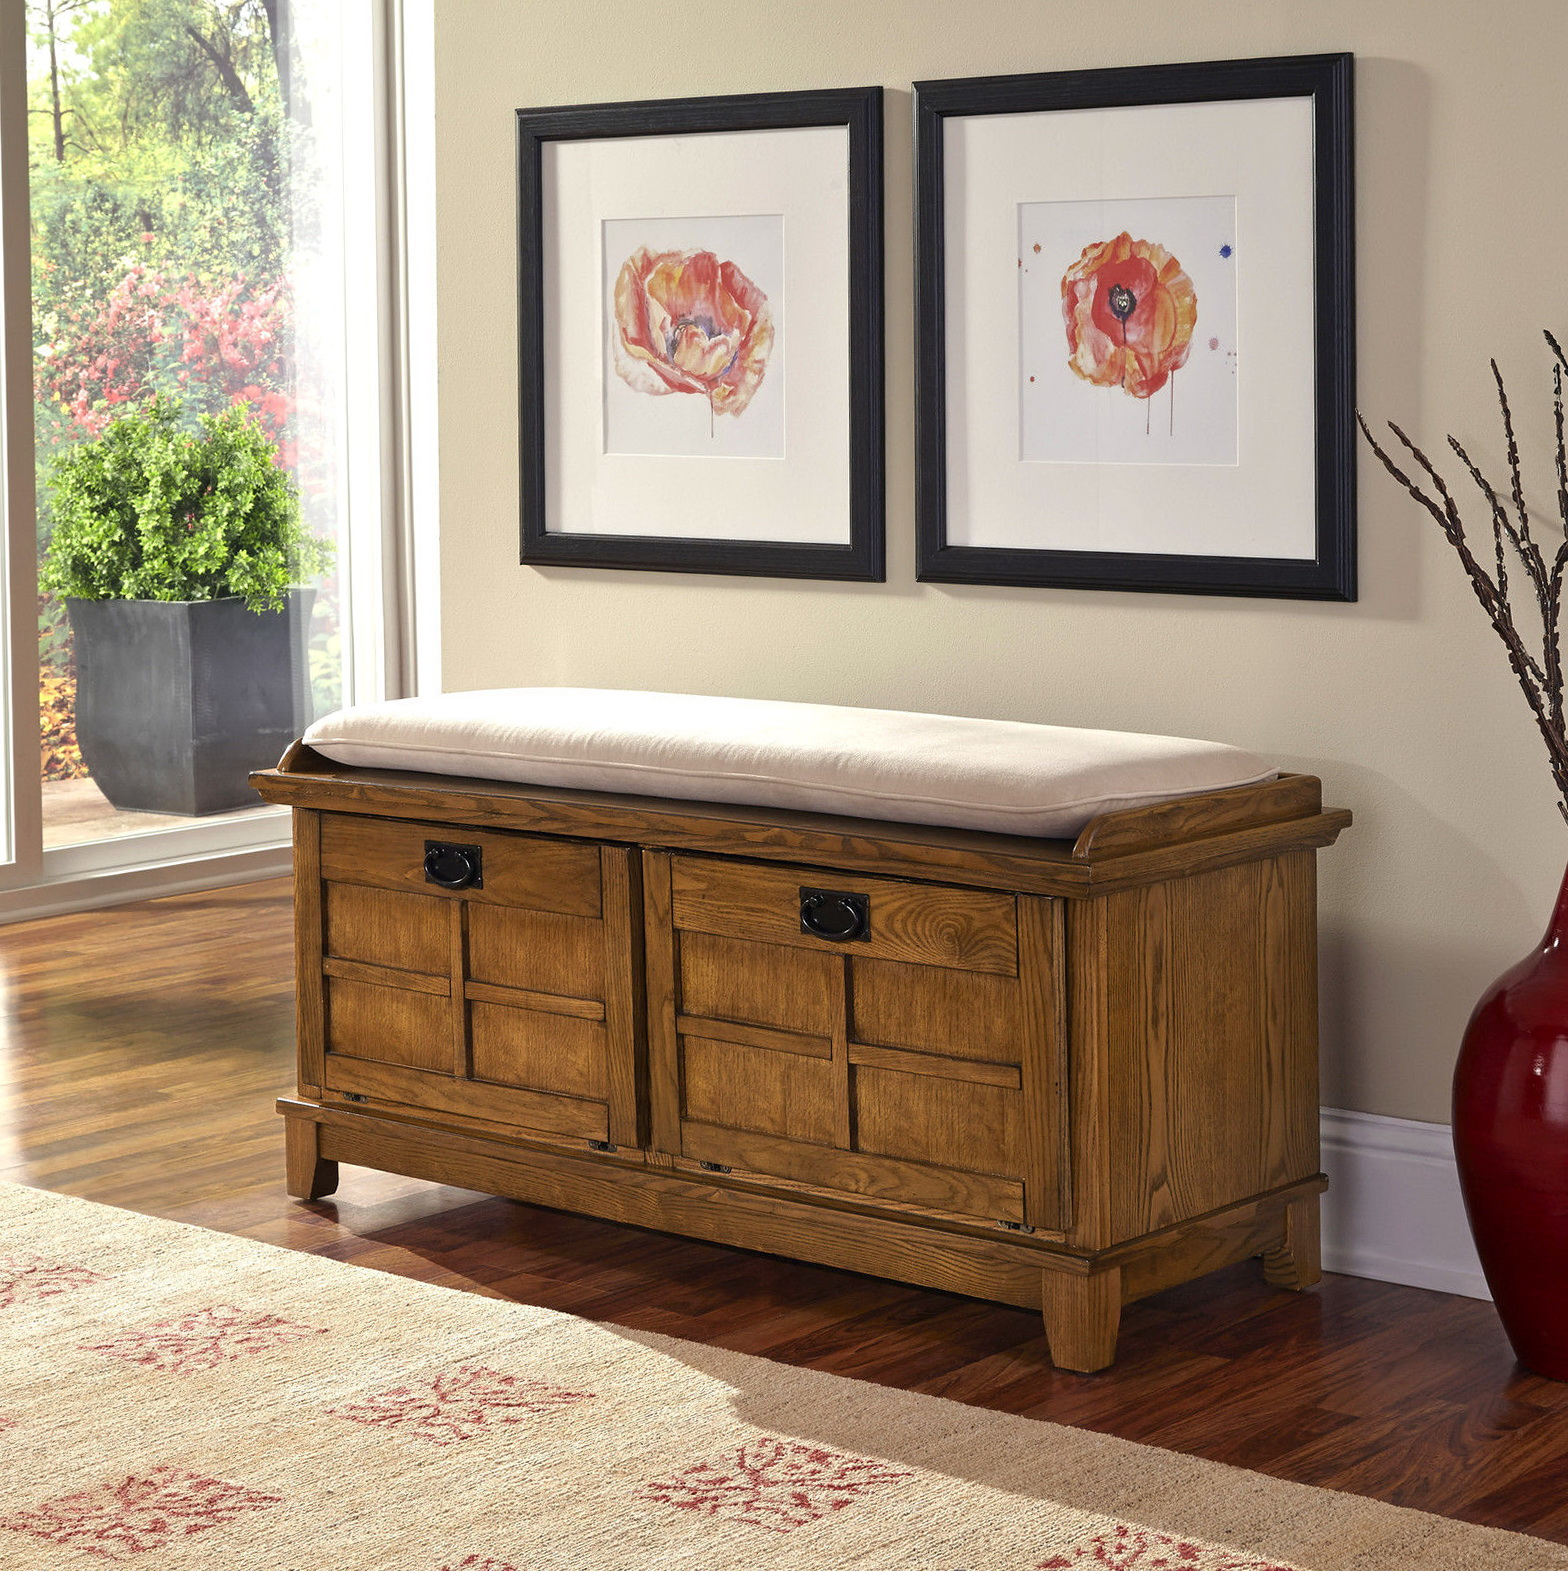 Bedroom bench seat nz home design ideas for Bedroom designs nz